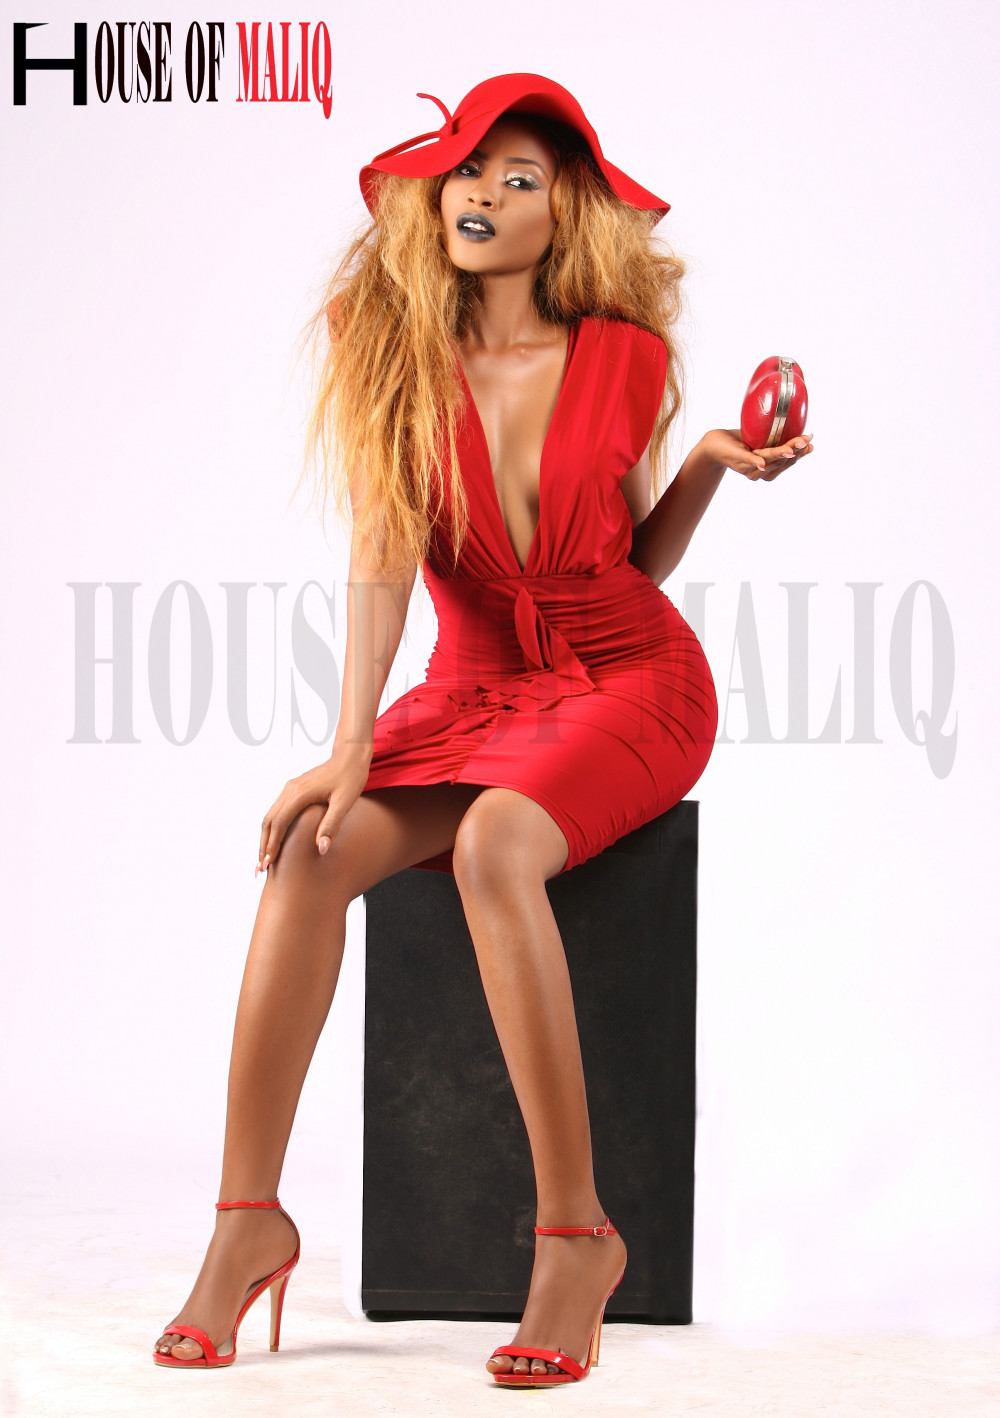 Image result wey dey for house of maliq